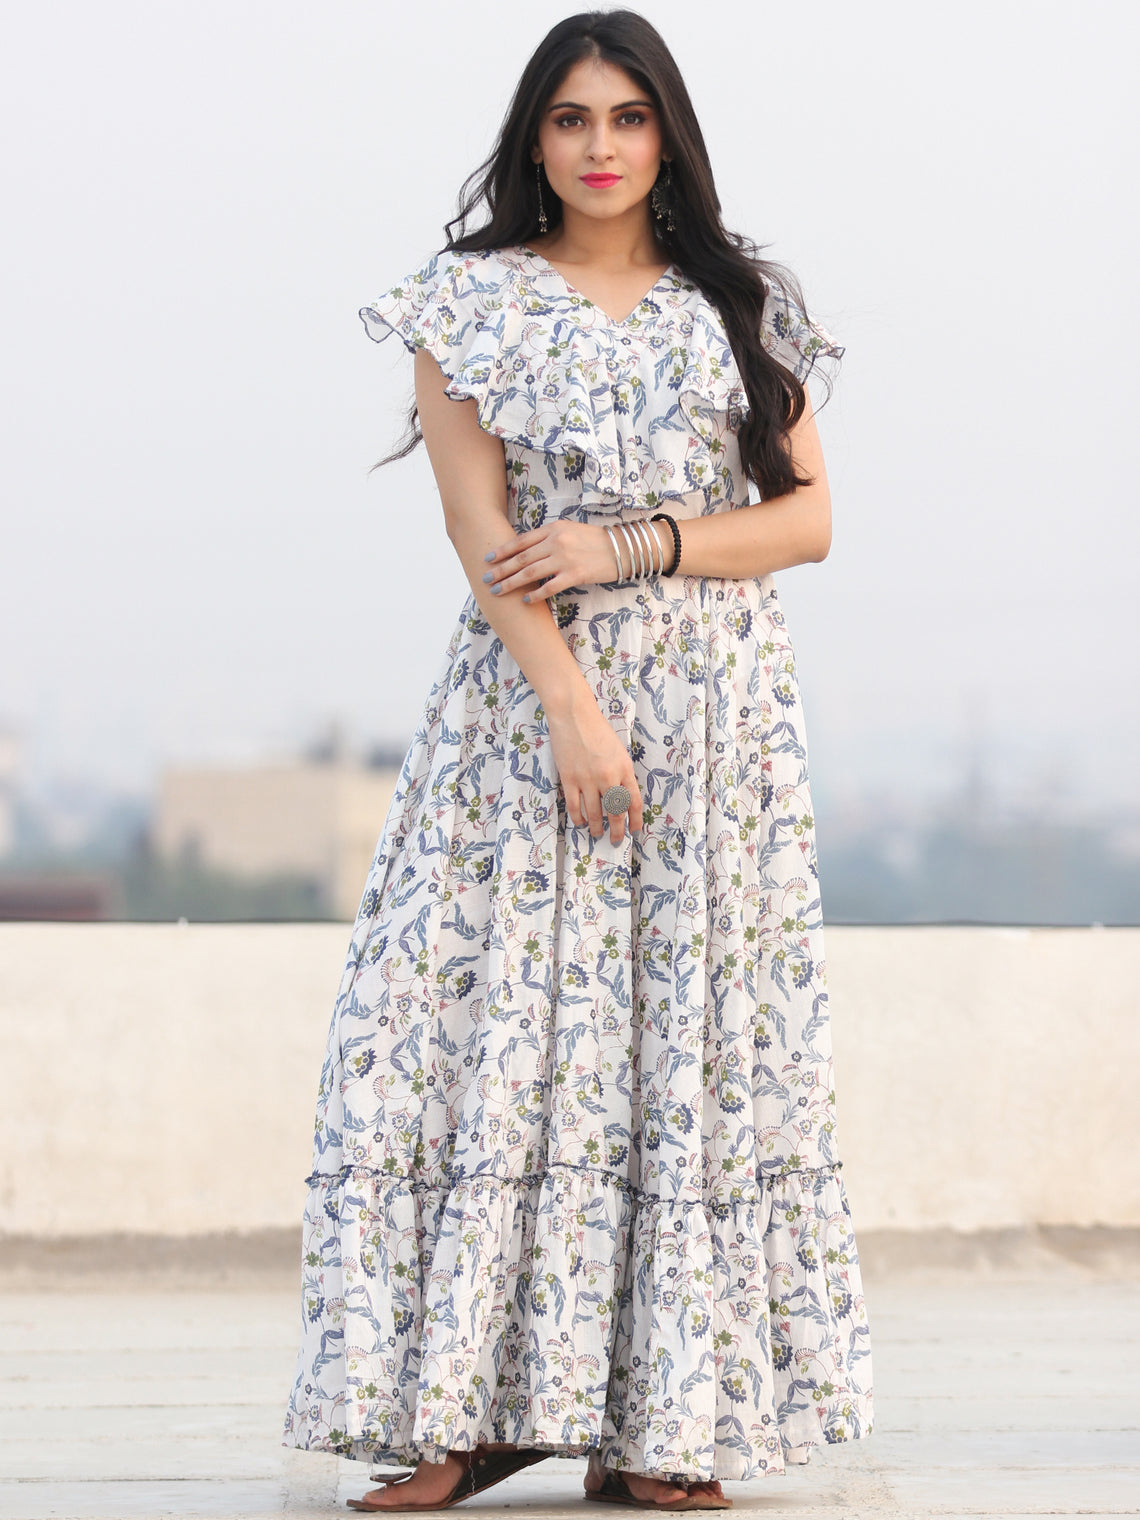 Gulzar Shamaa - Dress - Block Printed Frill Neck Long Dress D455F2291